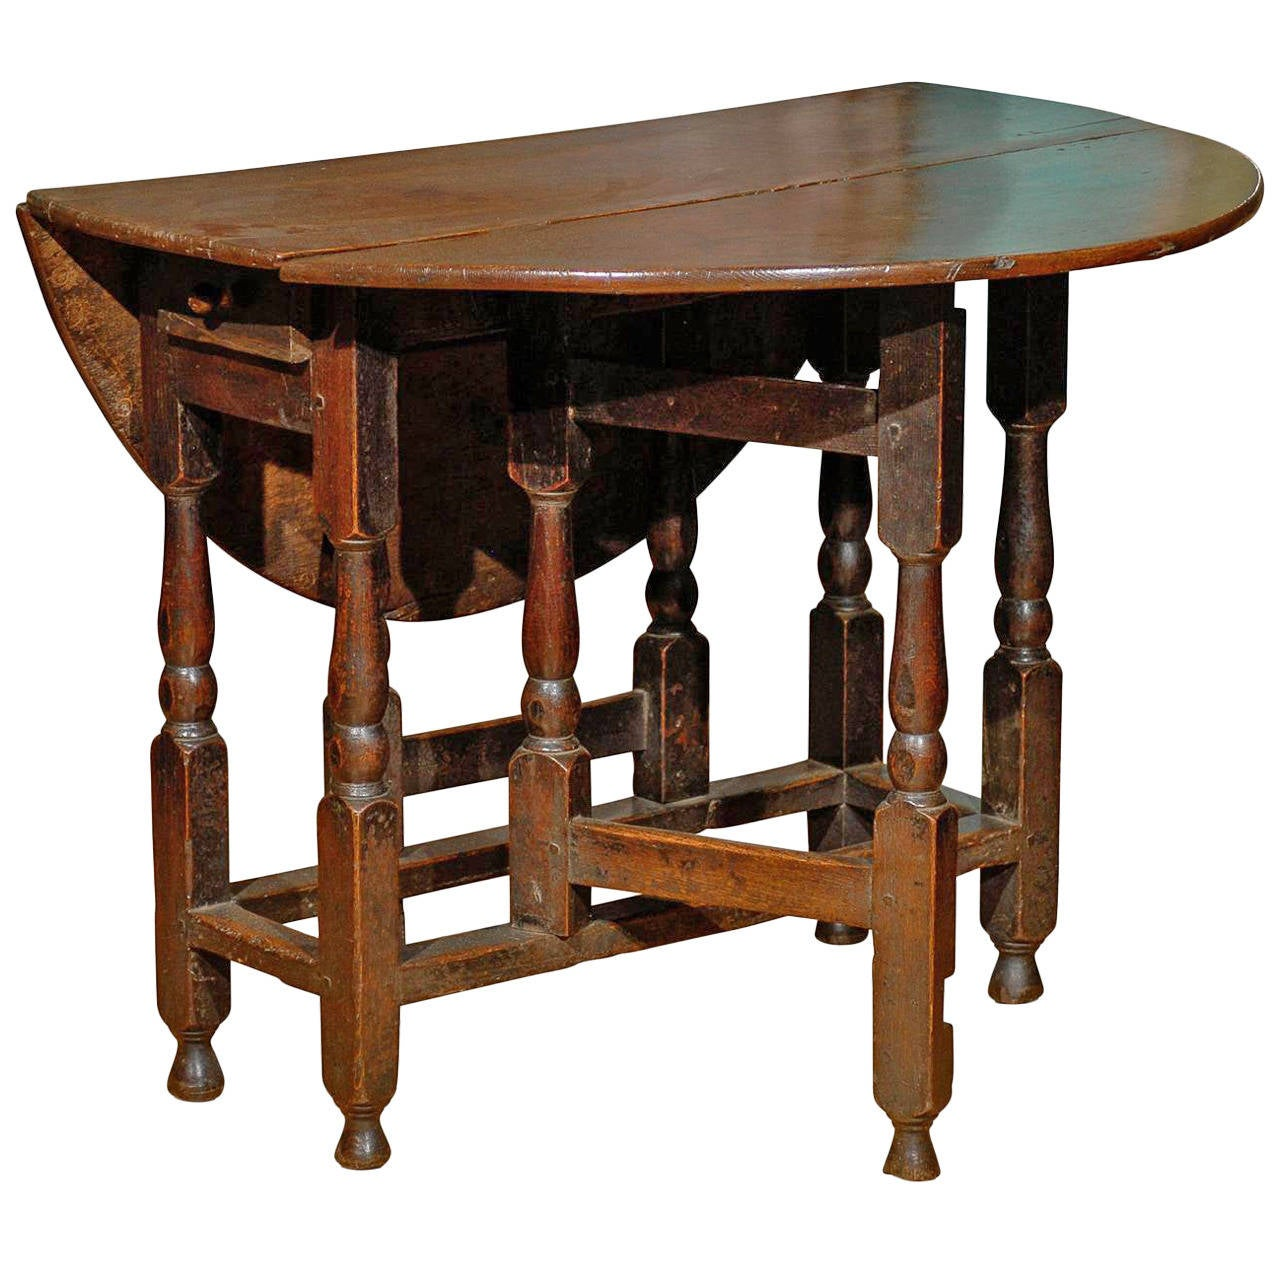 gateleg table with chairs ikea poang rocking chair english 19th century at 1stdibs